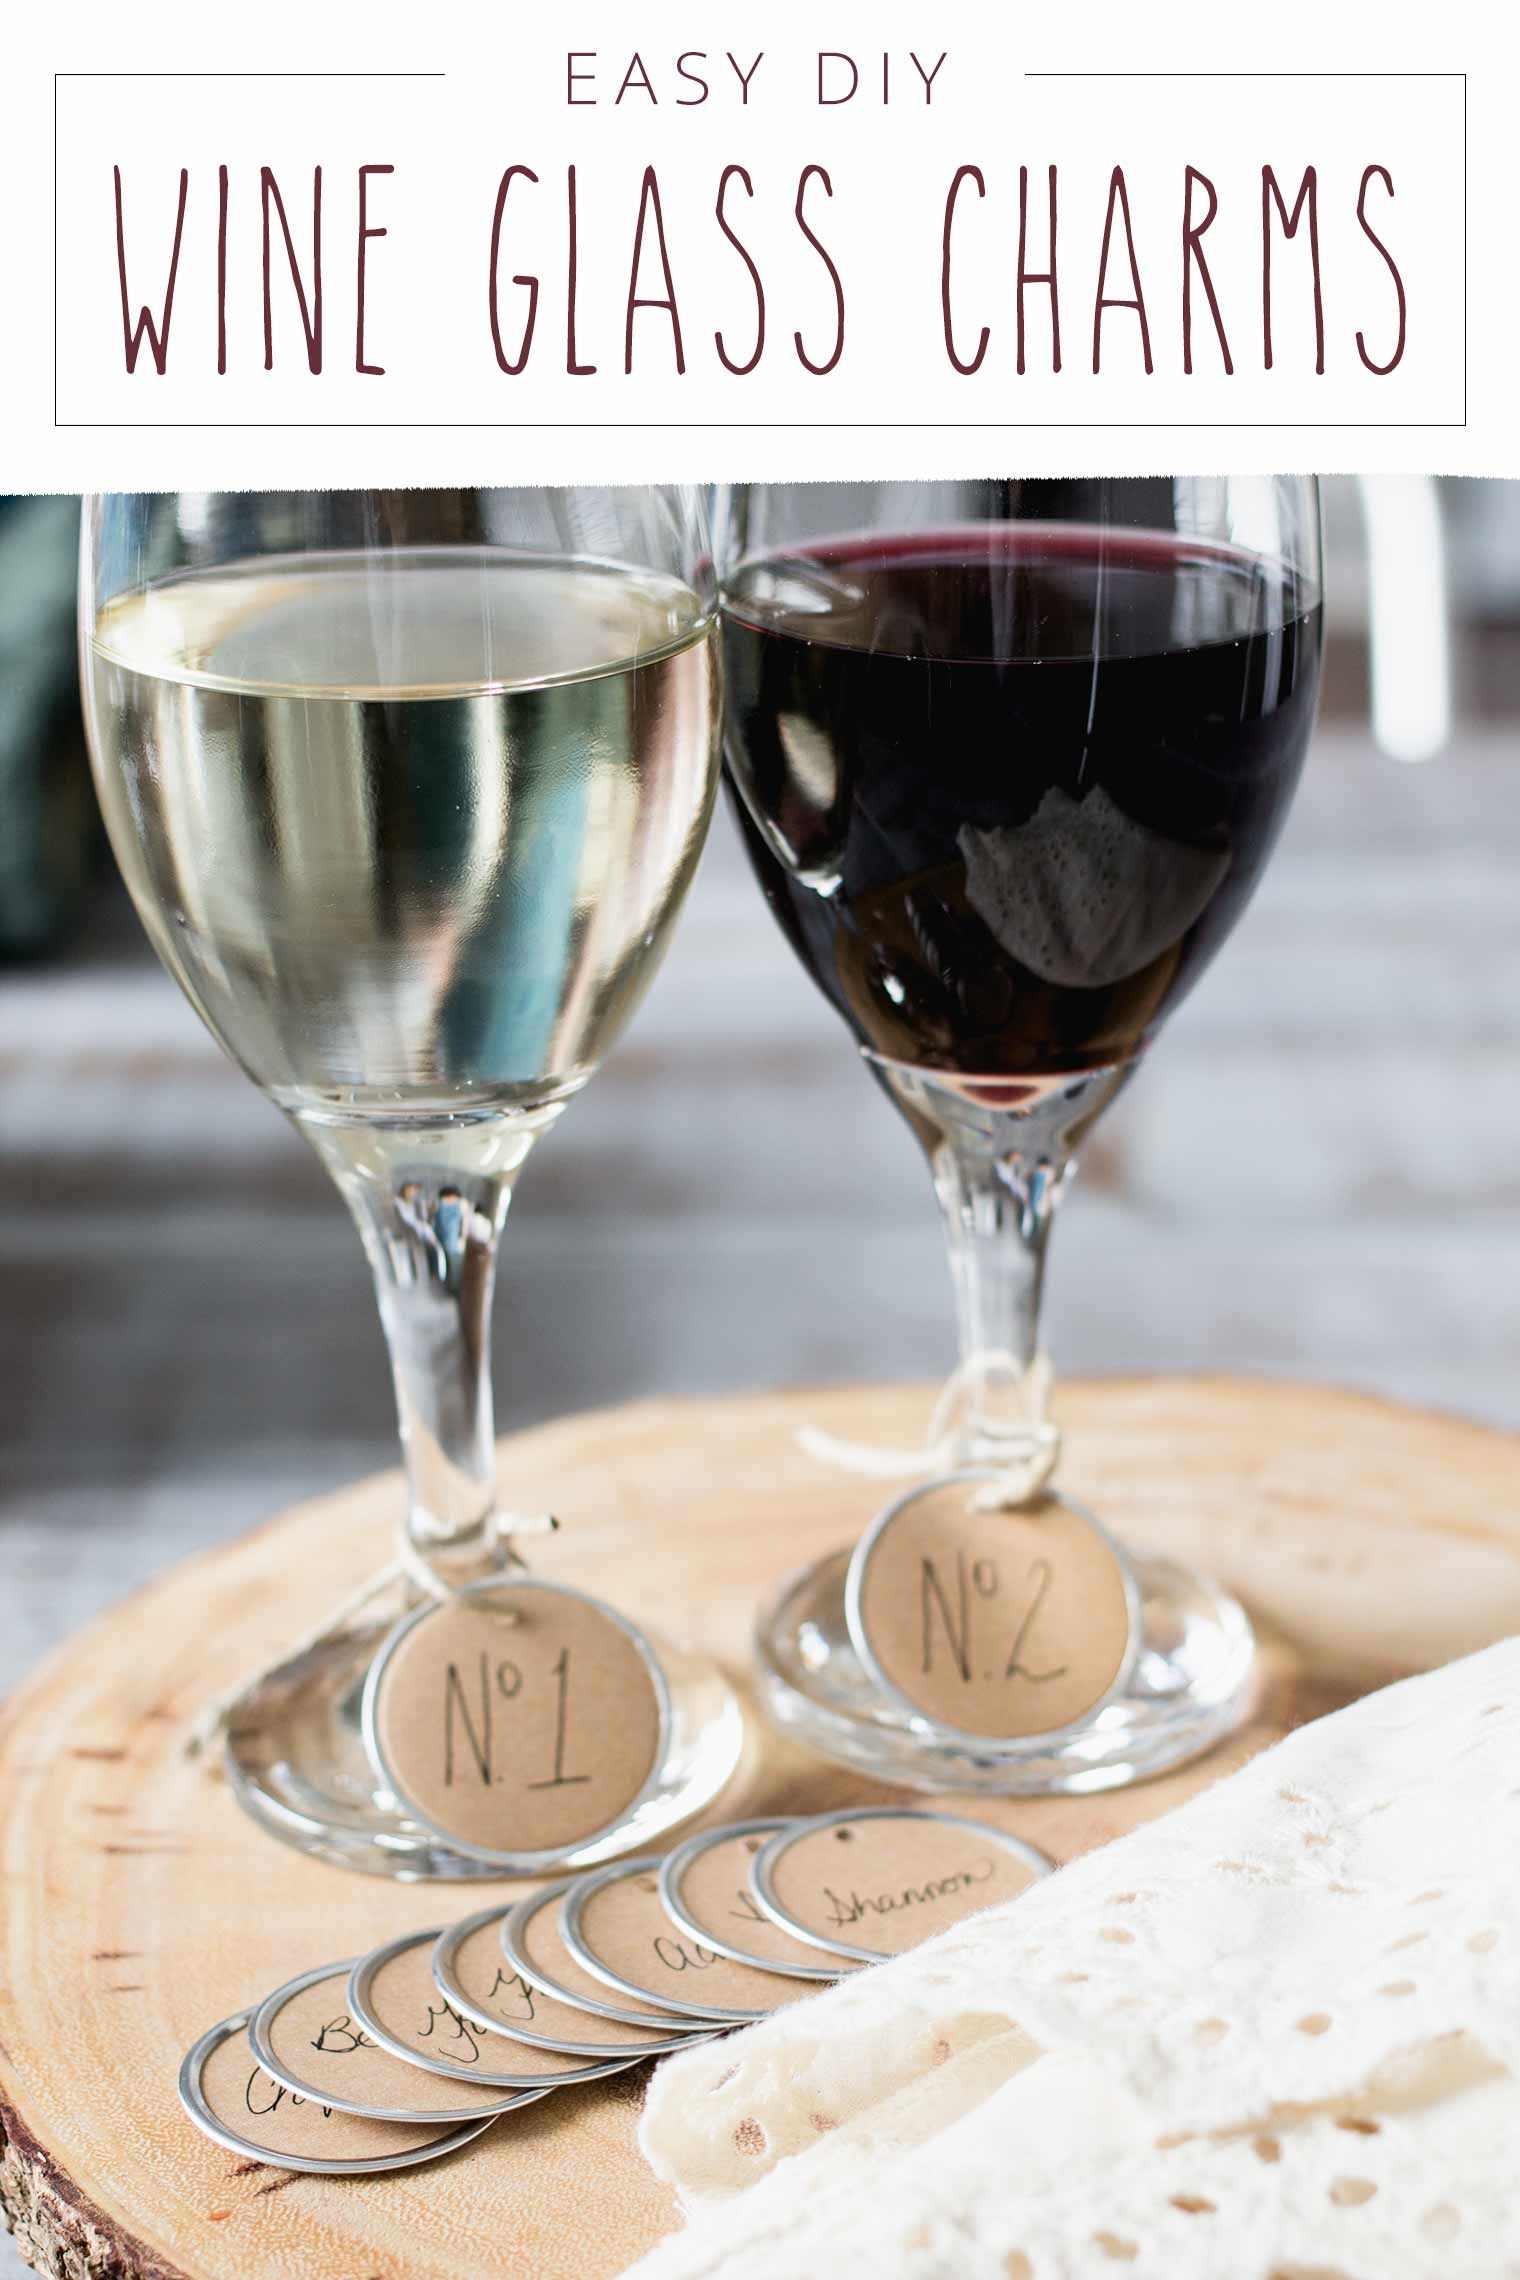 How To Make Easy Custom Personalized Diy Wine Glass Charms Diy Wine Glass Wine Glass Charms Wine Charms Diy